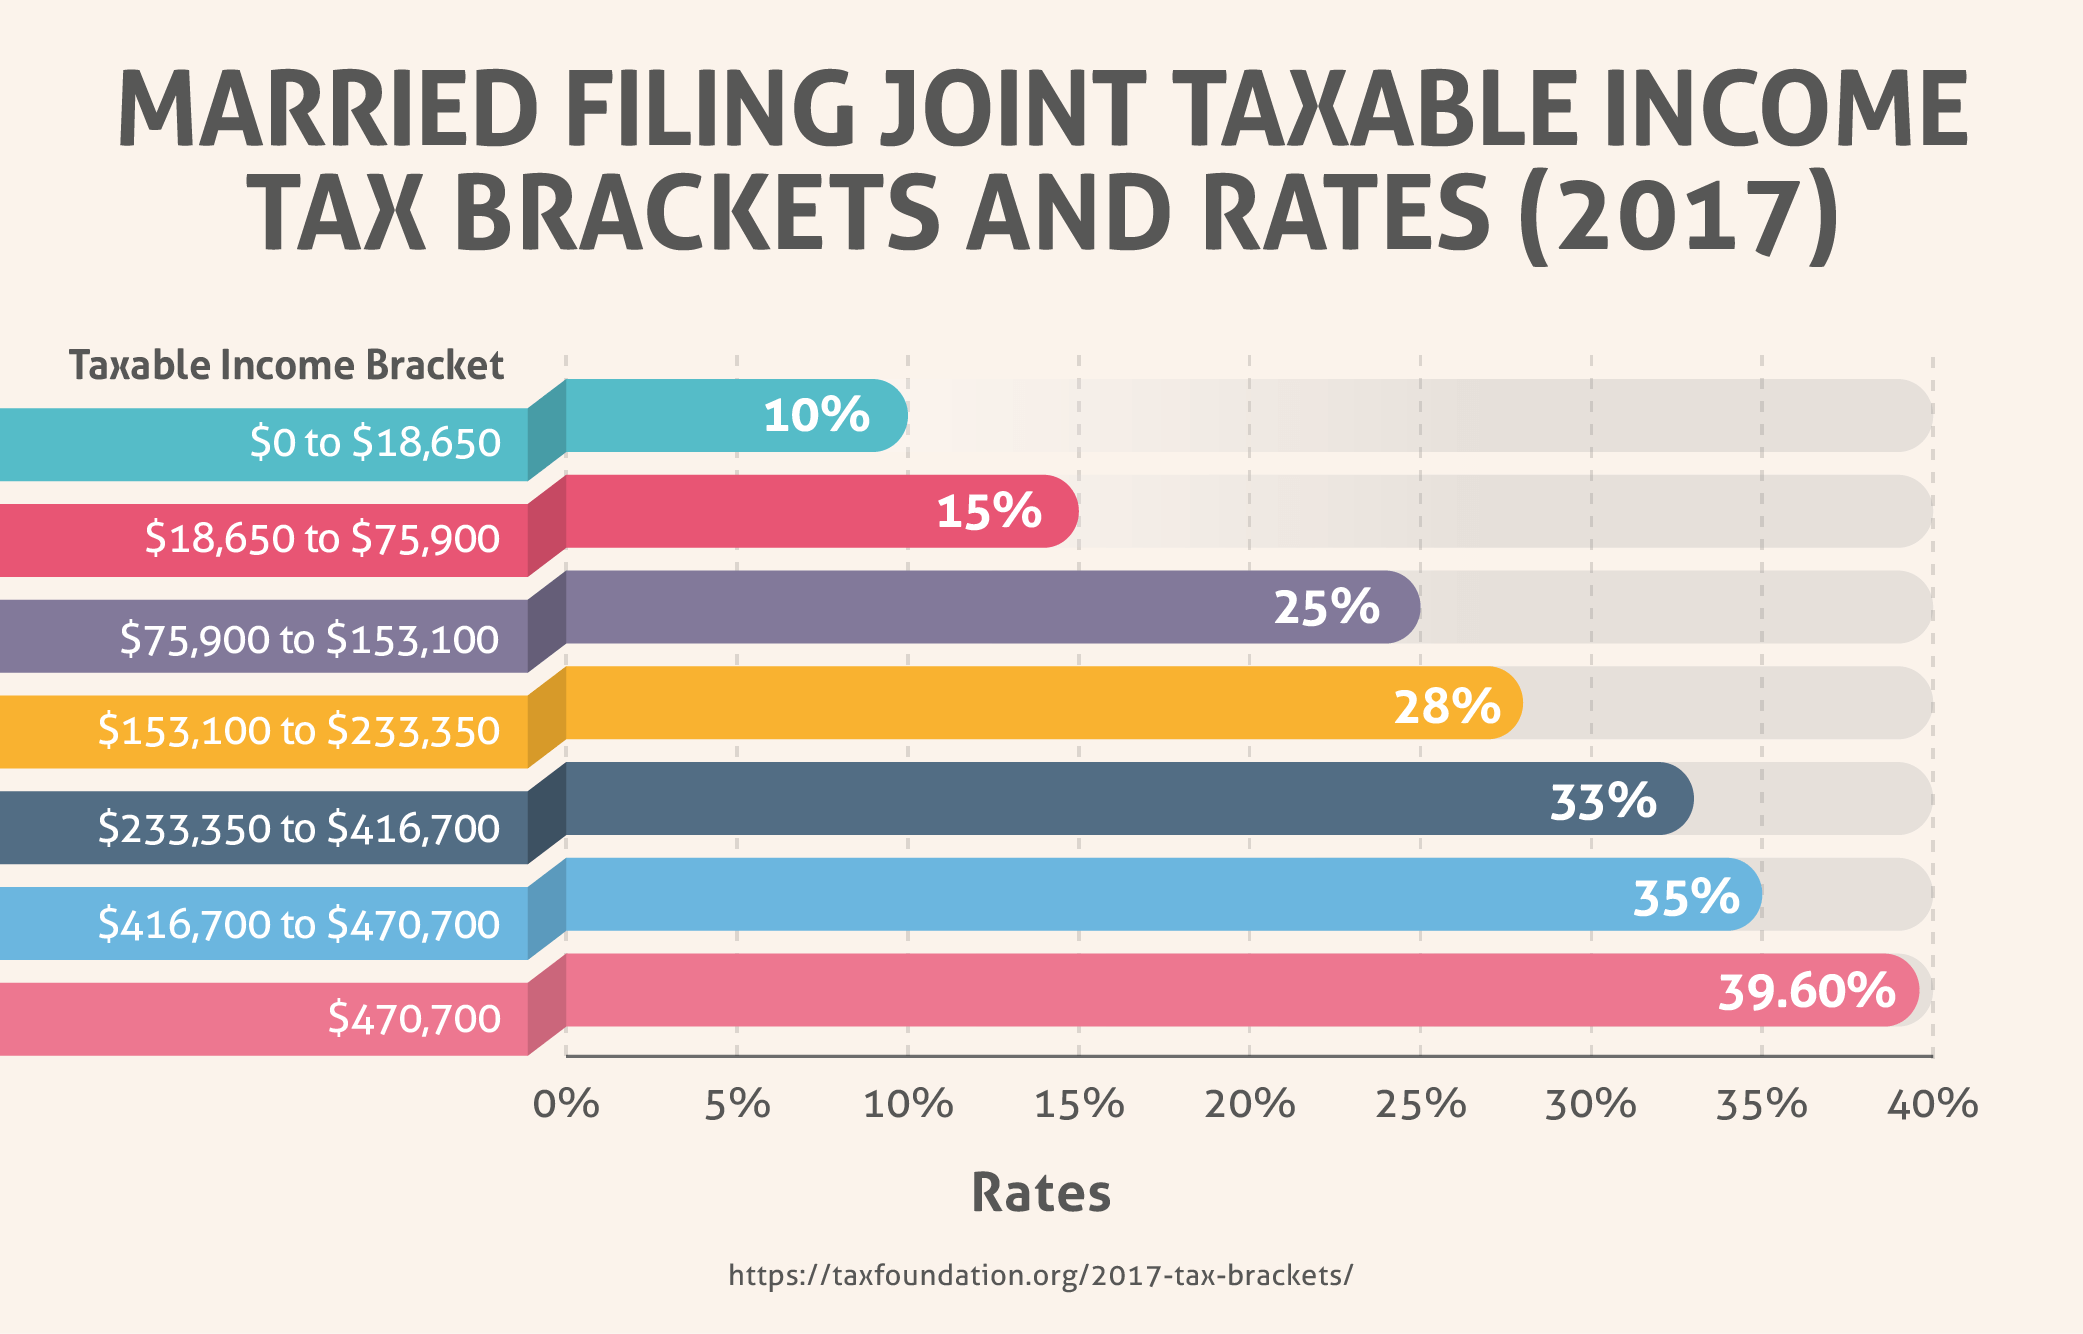 Married Filing Joint Taxable Income Tax Brackets and Rates (2017)